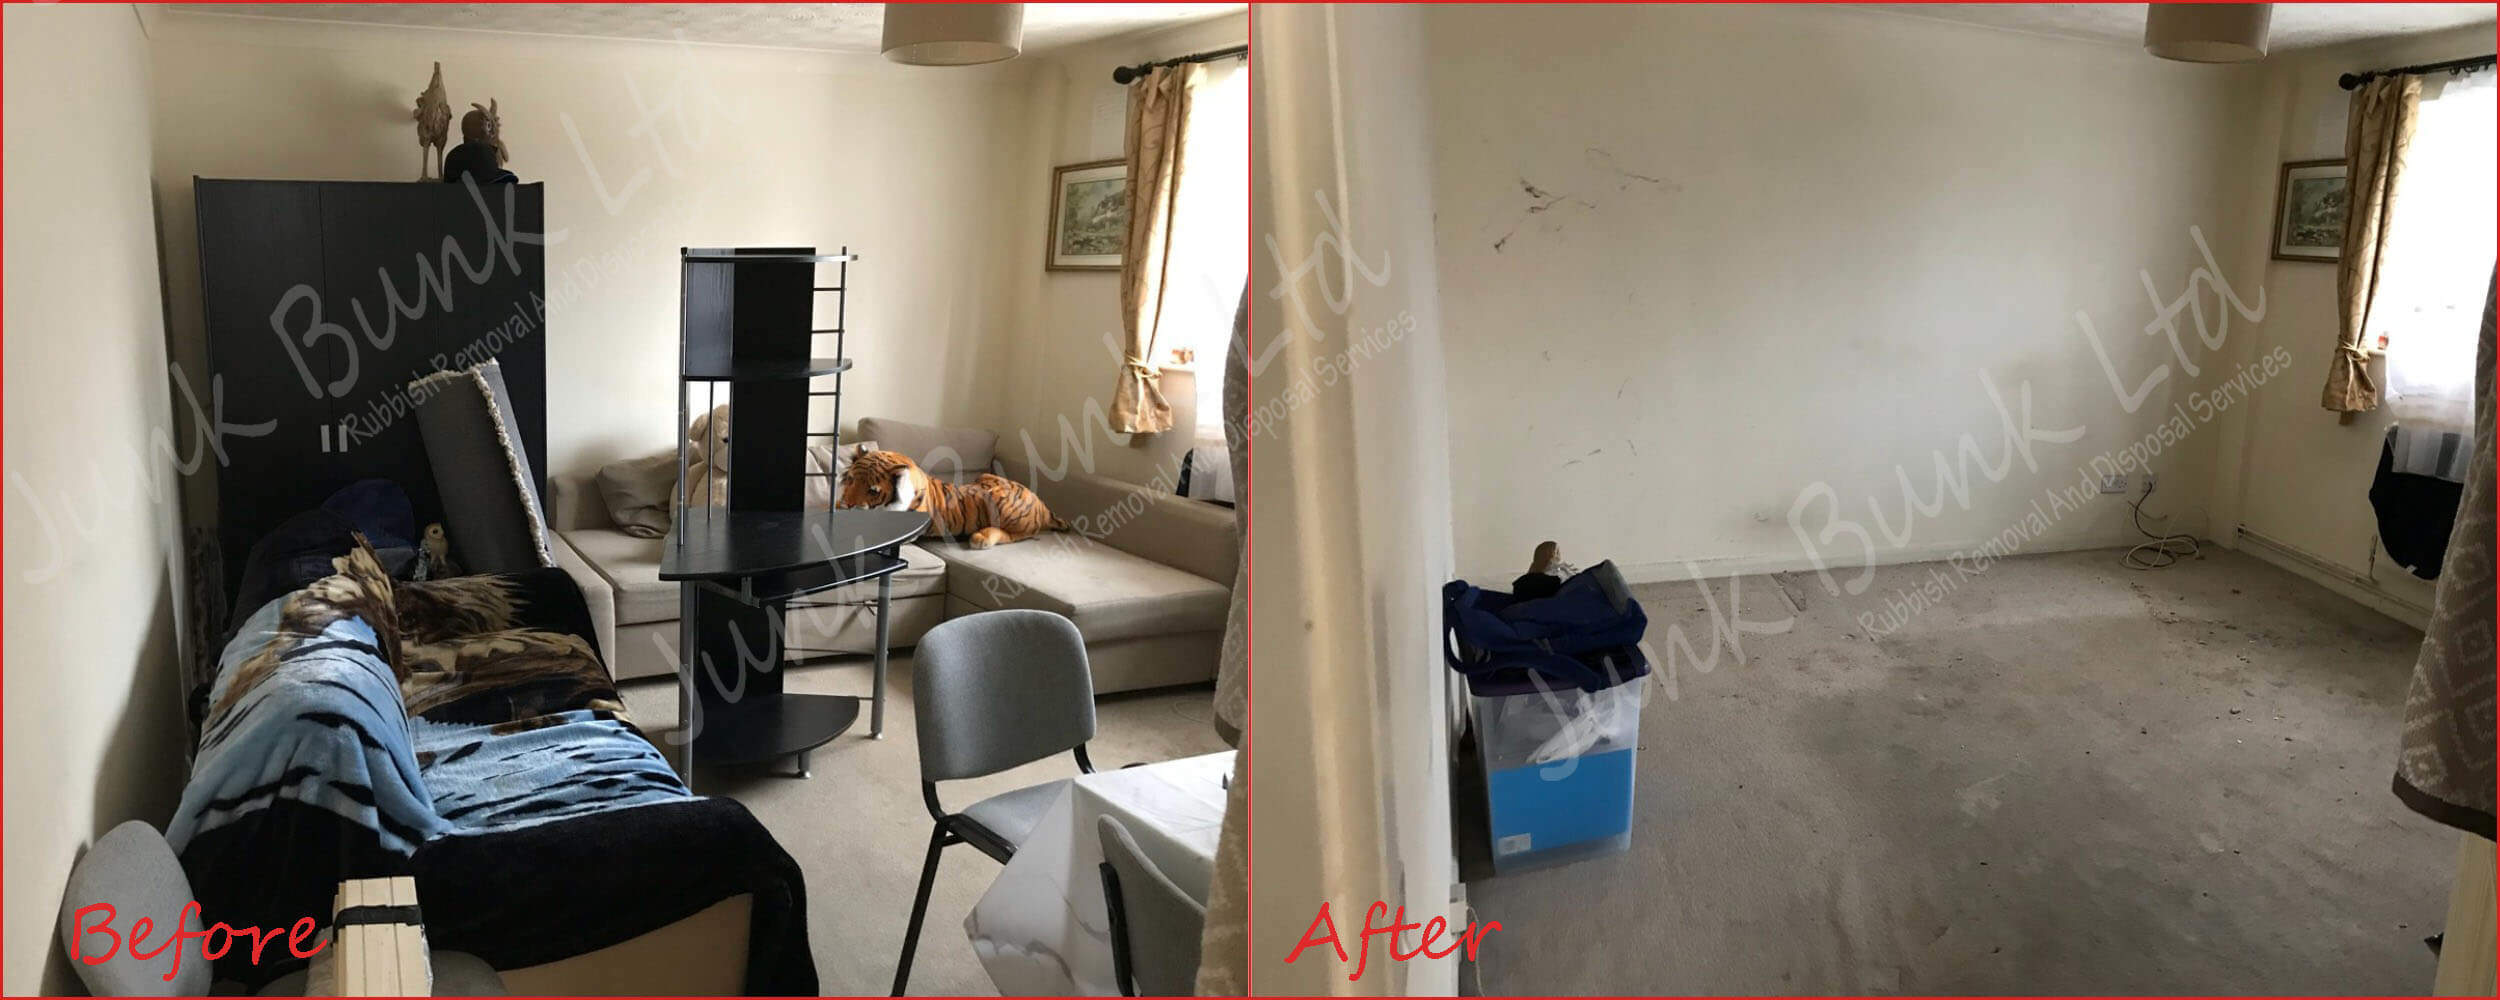 House Clearance North London